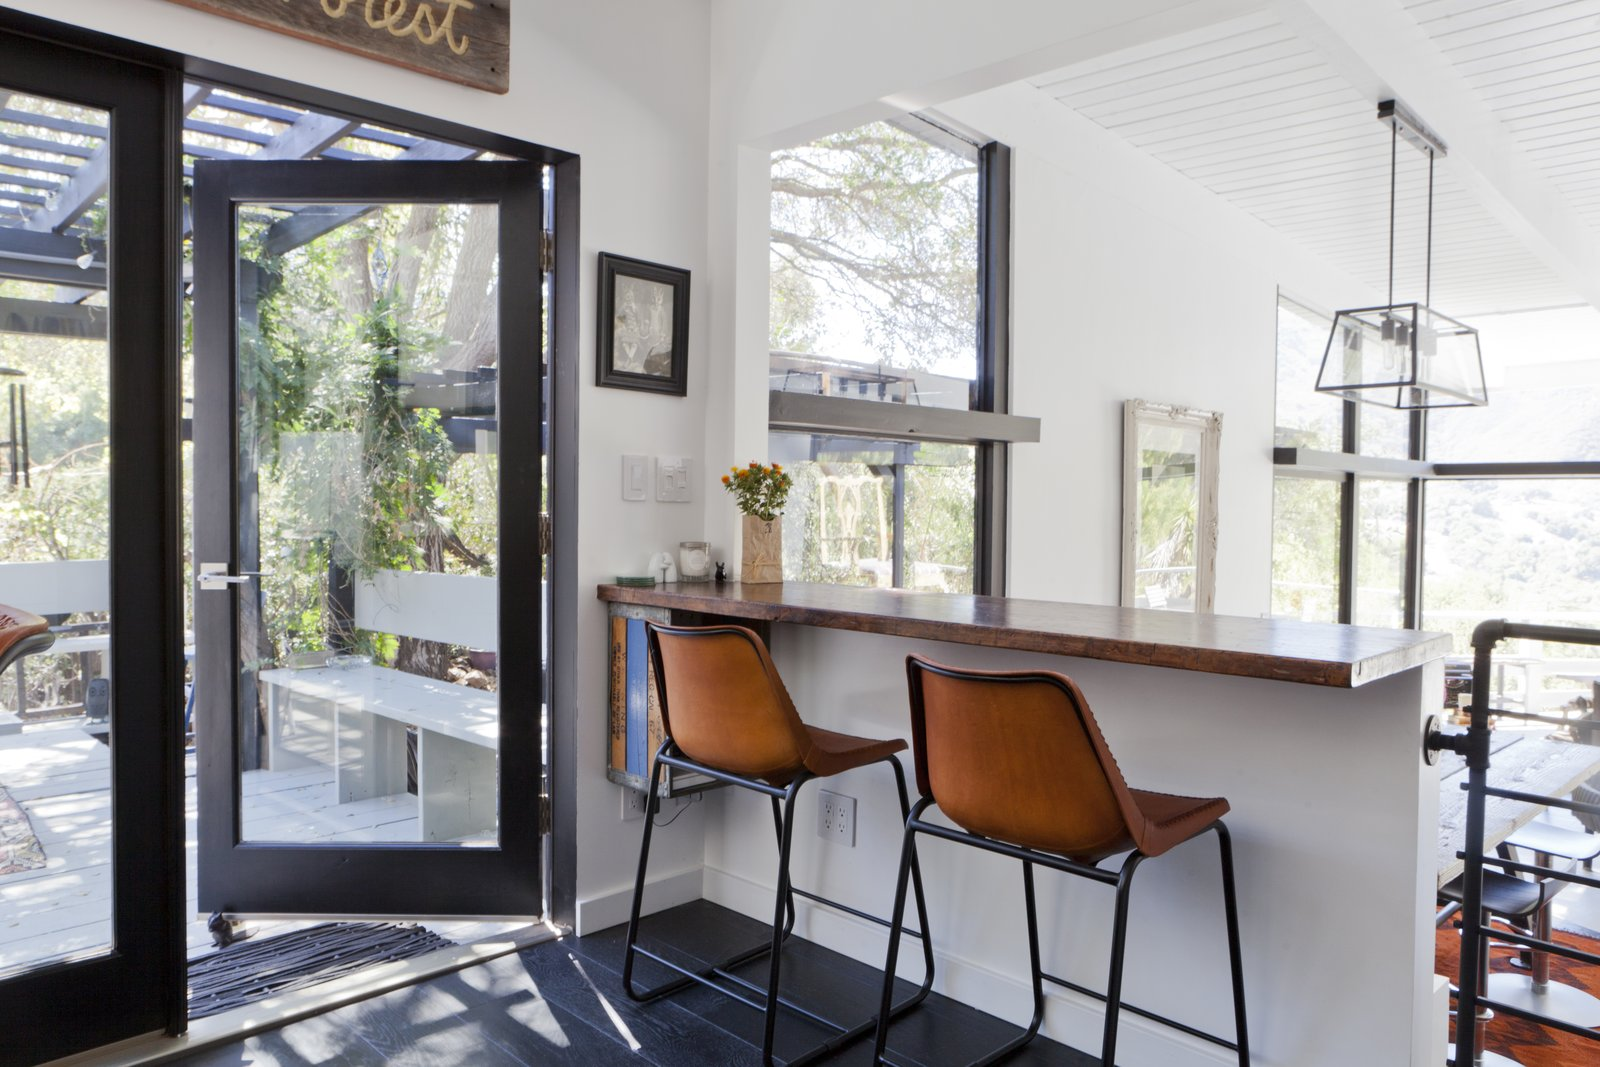 The updated kitchen and dining area is linked to the deck, which the family uses as an outdoor living space.  Photo 6 of 11 in Graphic Design Inspired This Handcrafted Canyon Hideaway